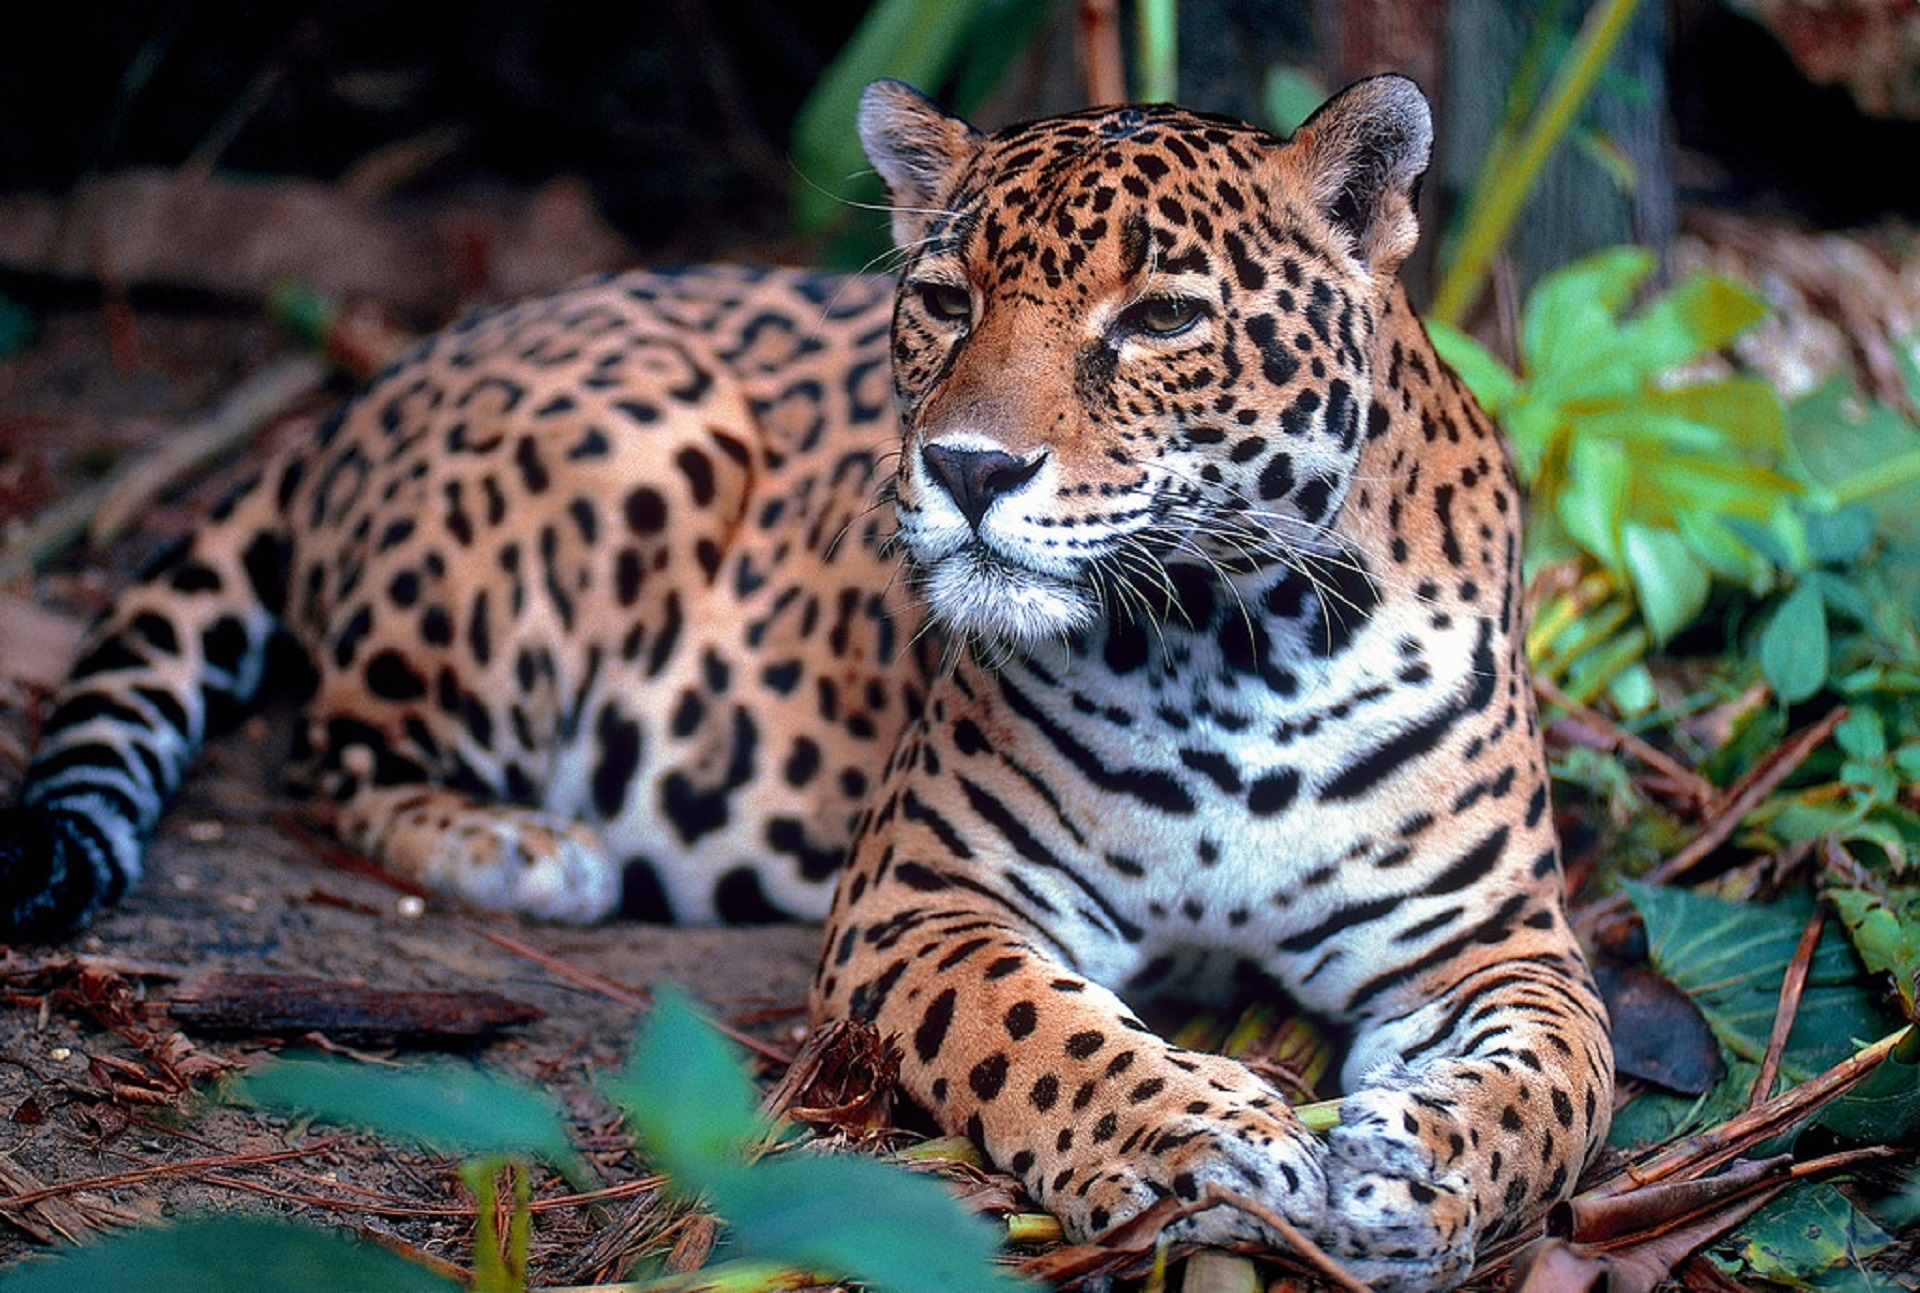 Gruntify Helping To Protect Jaguars In The Amazon